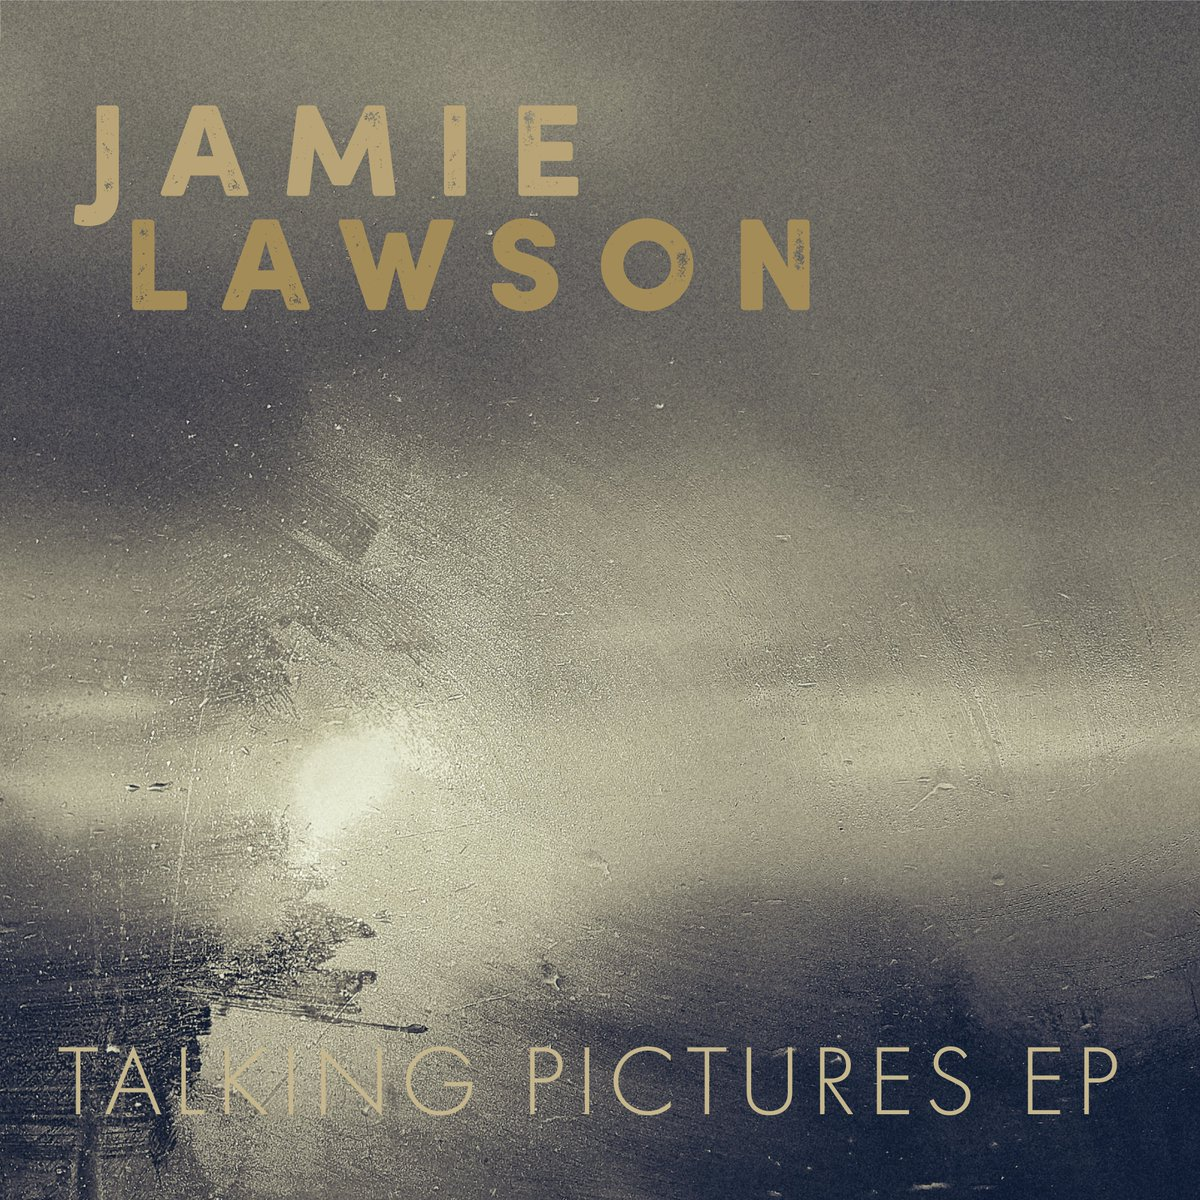 Very happy to announce my new EP 'Talking Pictures' will be released on November 27th. I'm very proud of it and can't wait for you to hear it.  Here's the link to pre-save, pre-order or pre-add, whatever your preference might be. Much love - Jx